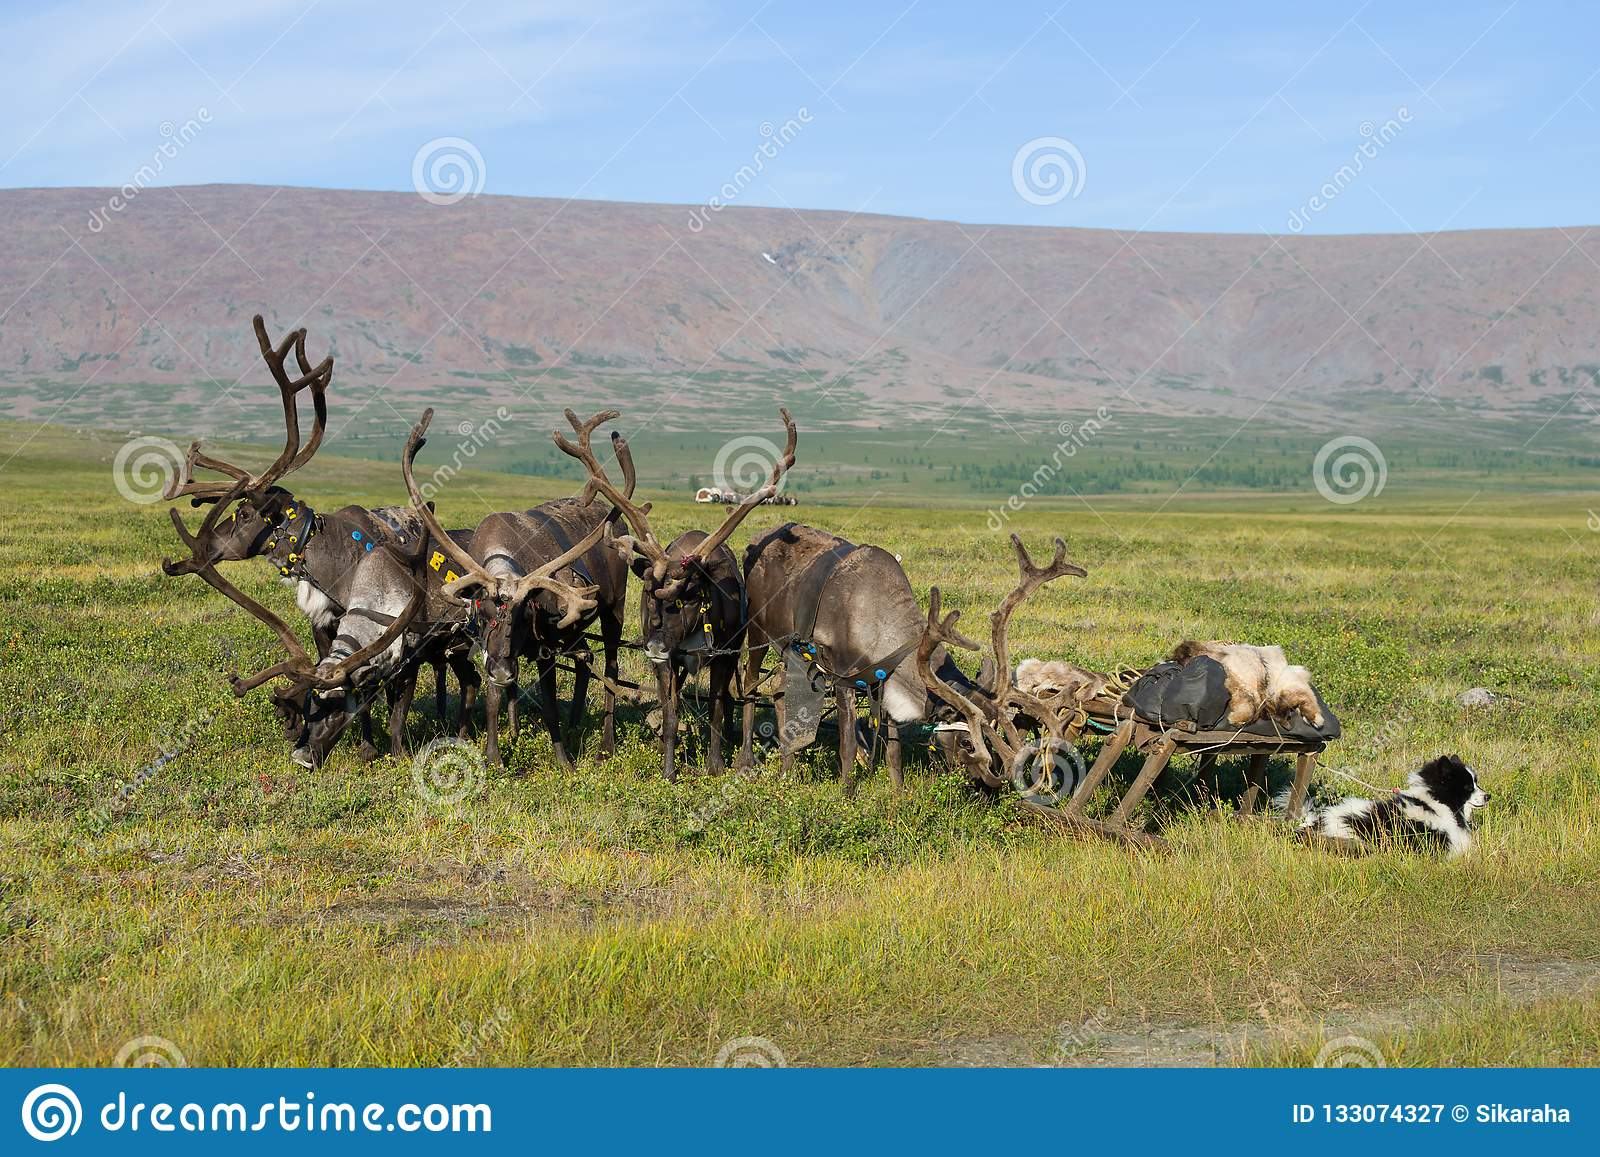 Reindeer with sleds in the Yamal tundra. Russia